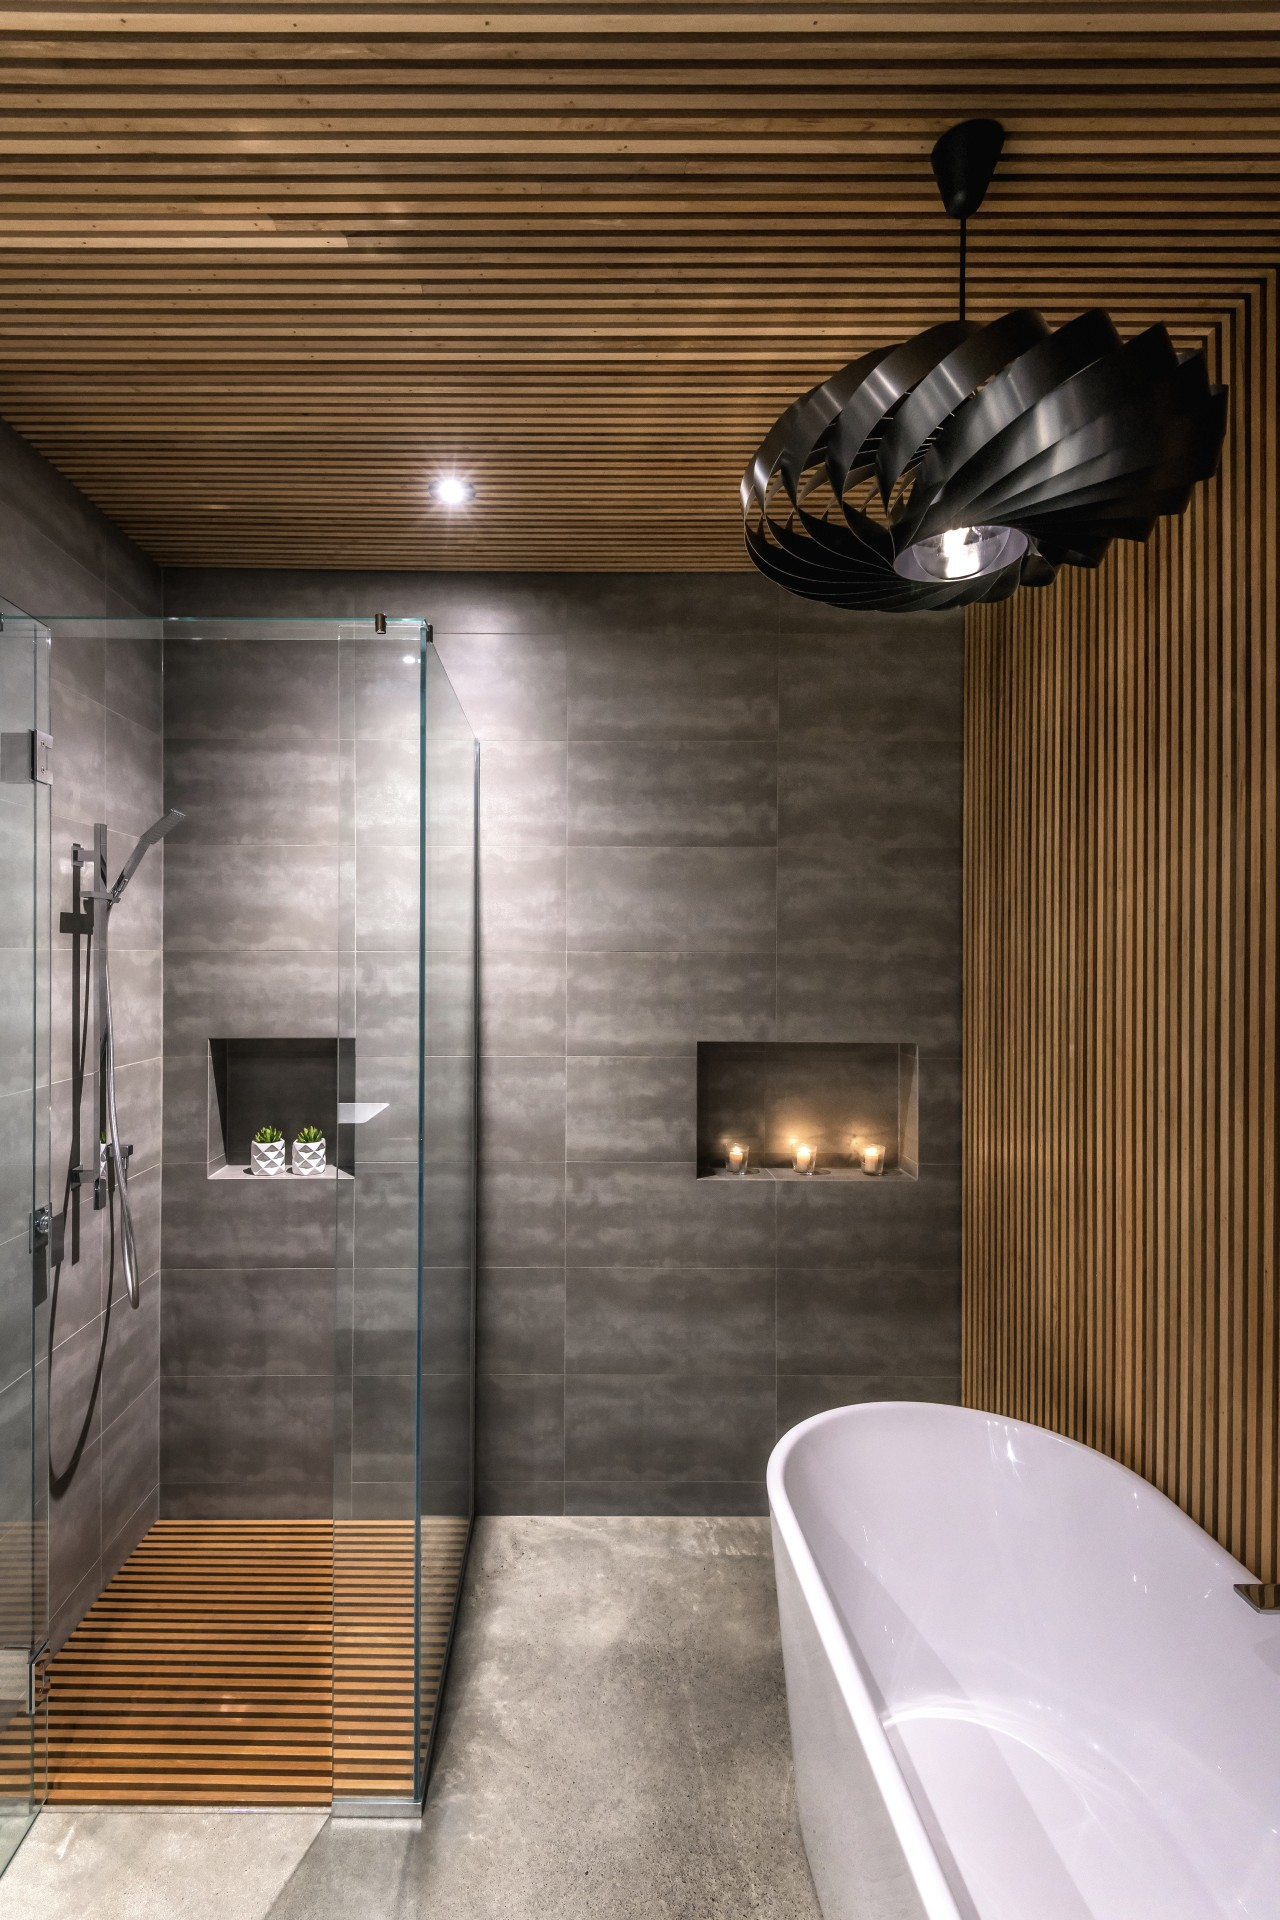 In the bathroom, the tiled areas incorporate custom architecture, bathroom, building, ceiling, floor, flooring, home, house, interior design, lighting, property, real estate, room, tile, wall, brown, gray